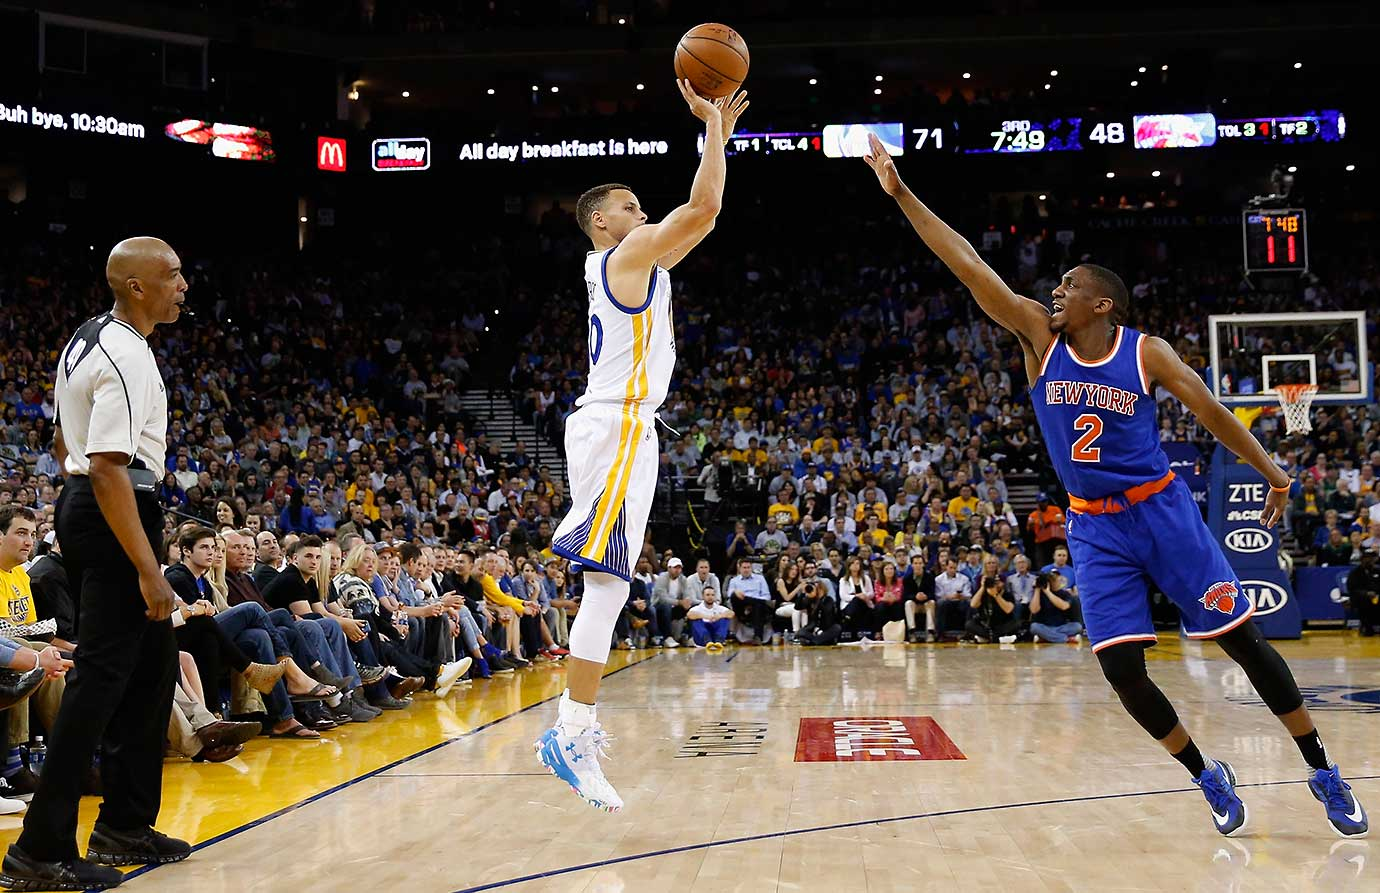 Steph Curry of the Warriors shoots a three-pointer over Langston Galloway of the New York Knicks. Curry scored 34 points across three quarters and sat out the fourth.